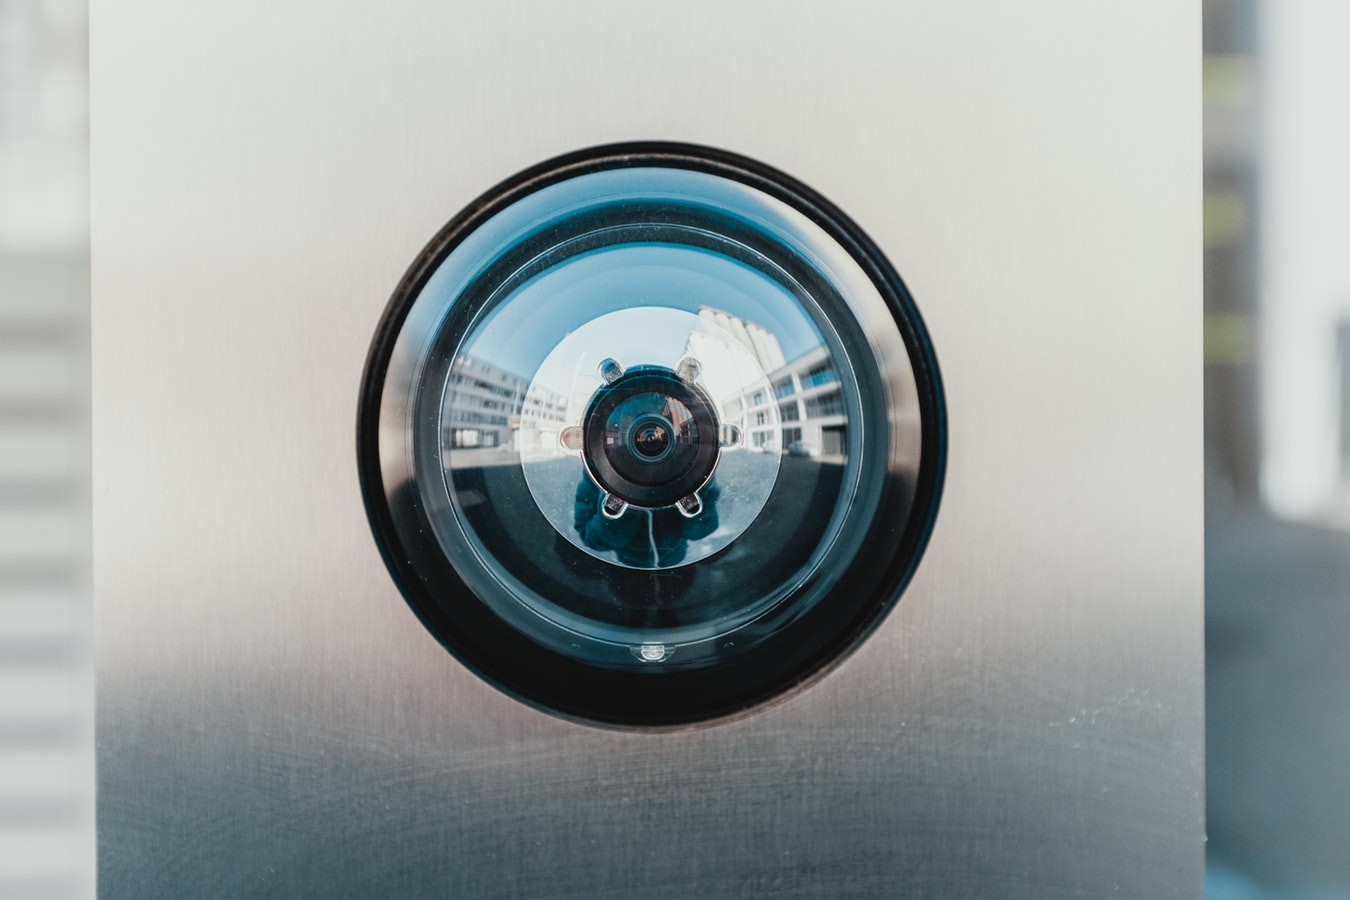 3 Common Scenarios for Corporate Security Systems - Image from Bernard Hermant in Unsplash